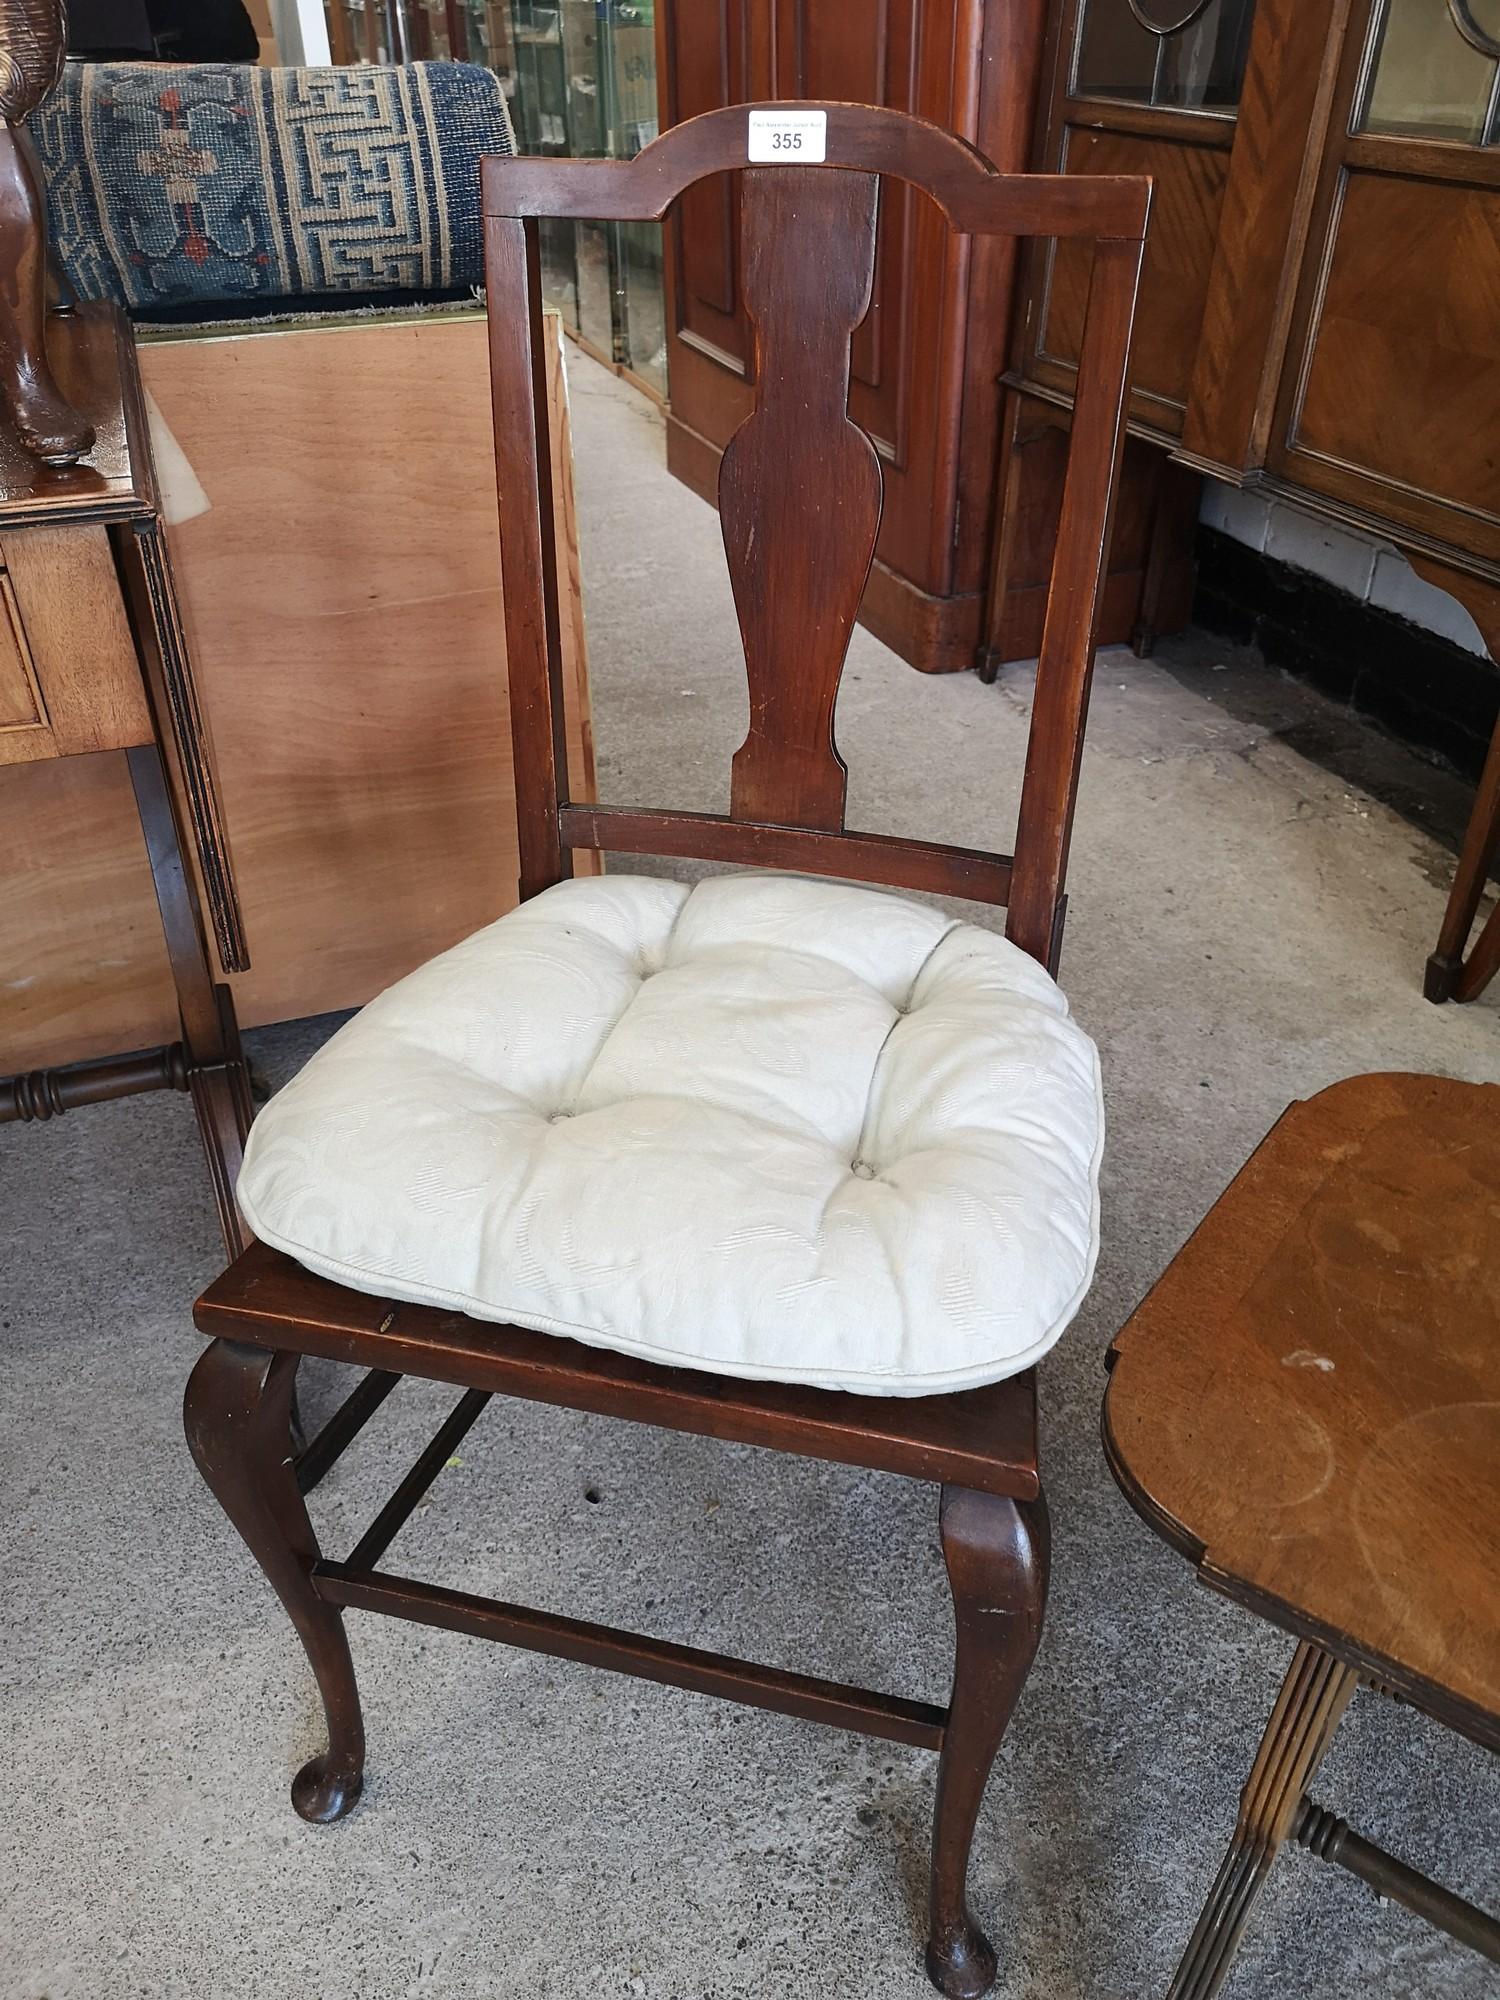 Vintage liar shaped end table with brass feet together with vintage chair. - Image 3 of 3